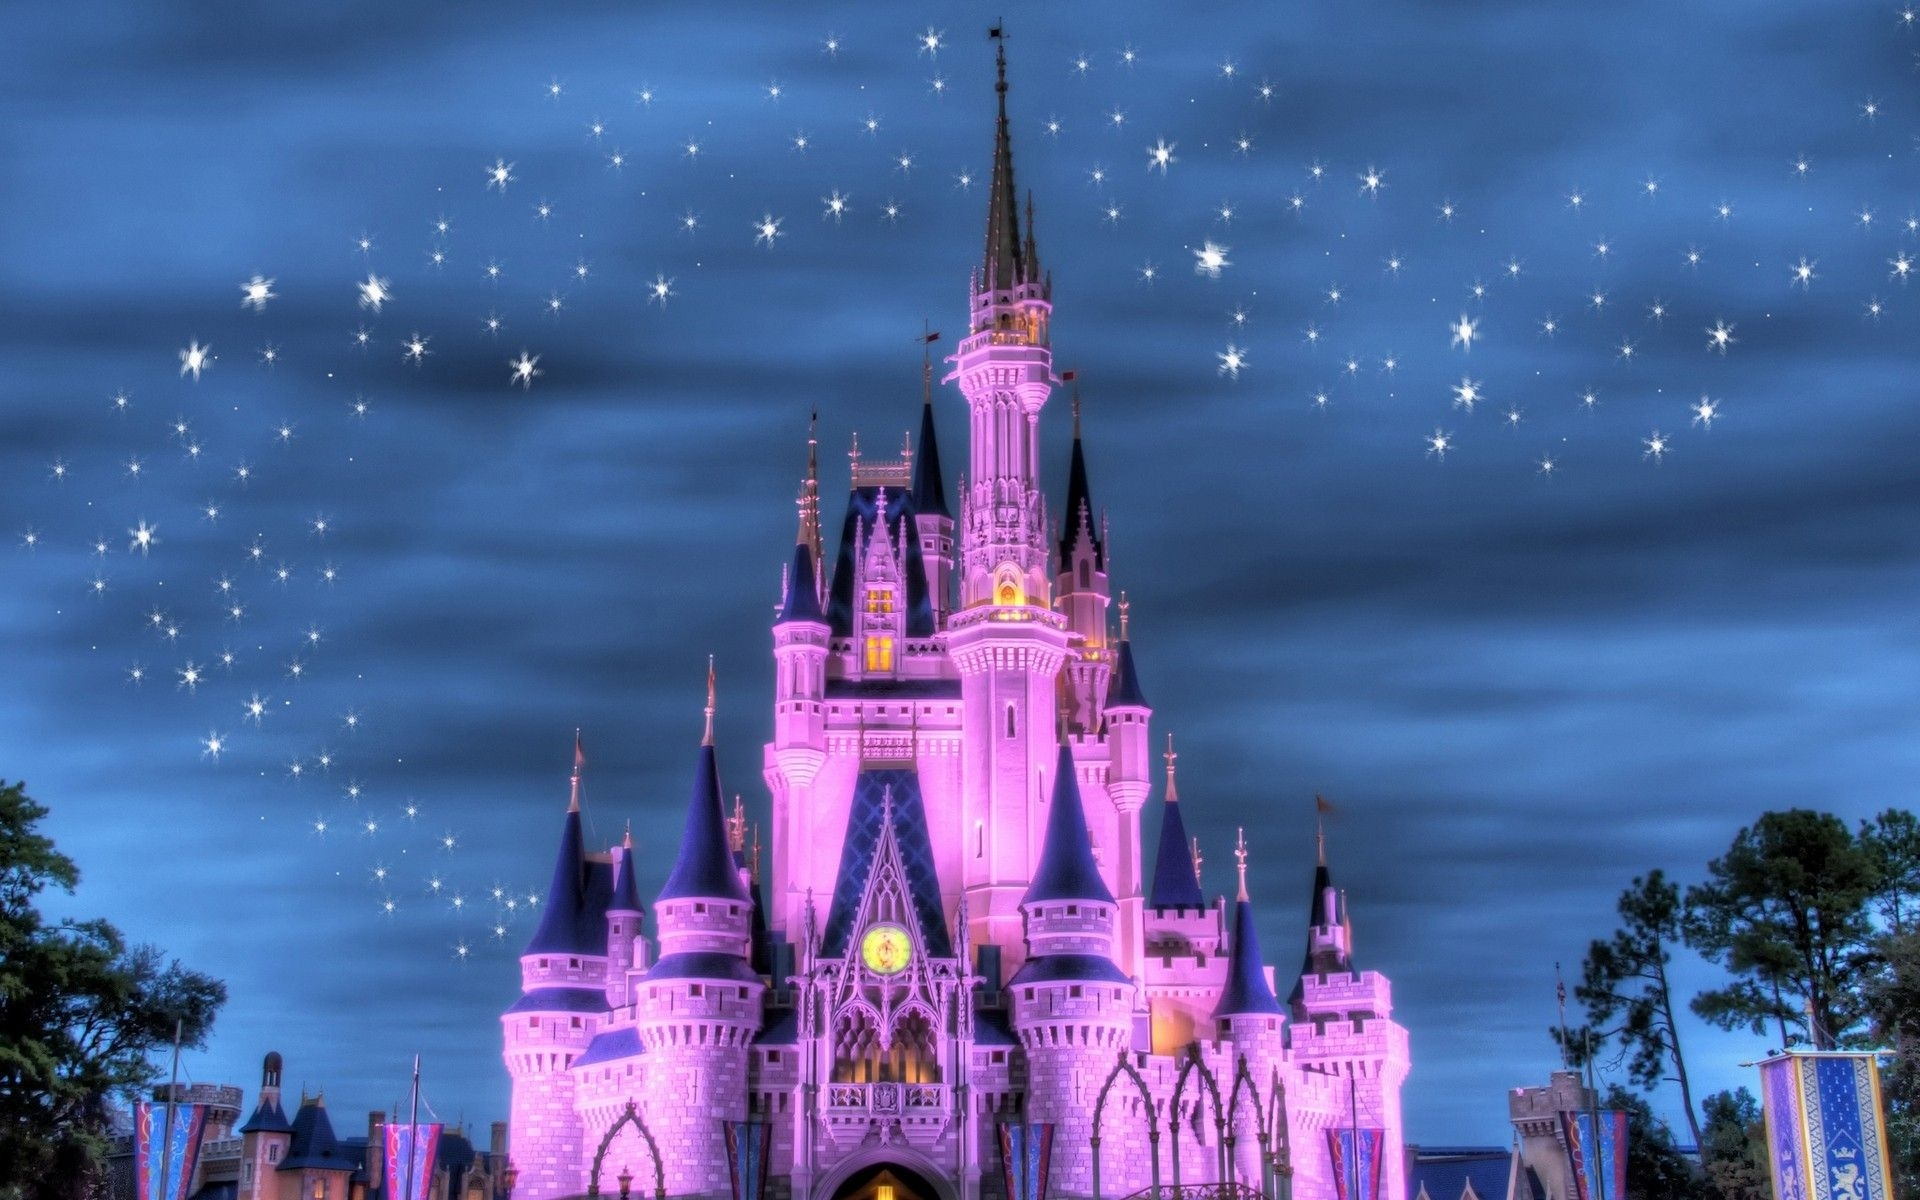 hd disney world photos. - media file | pixelstalk